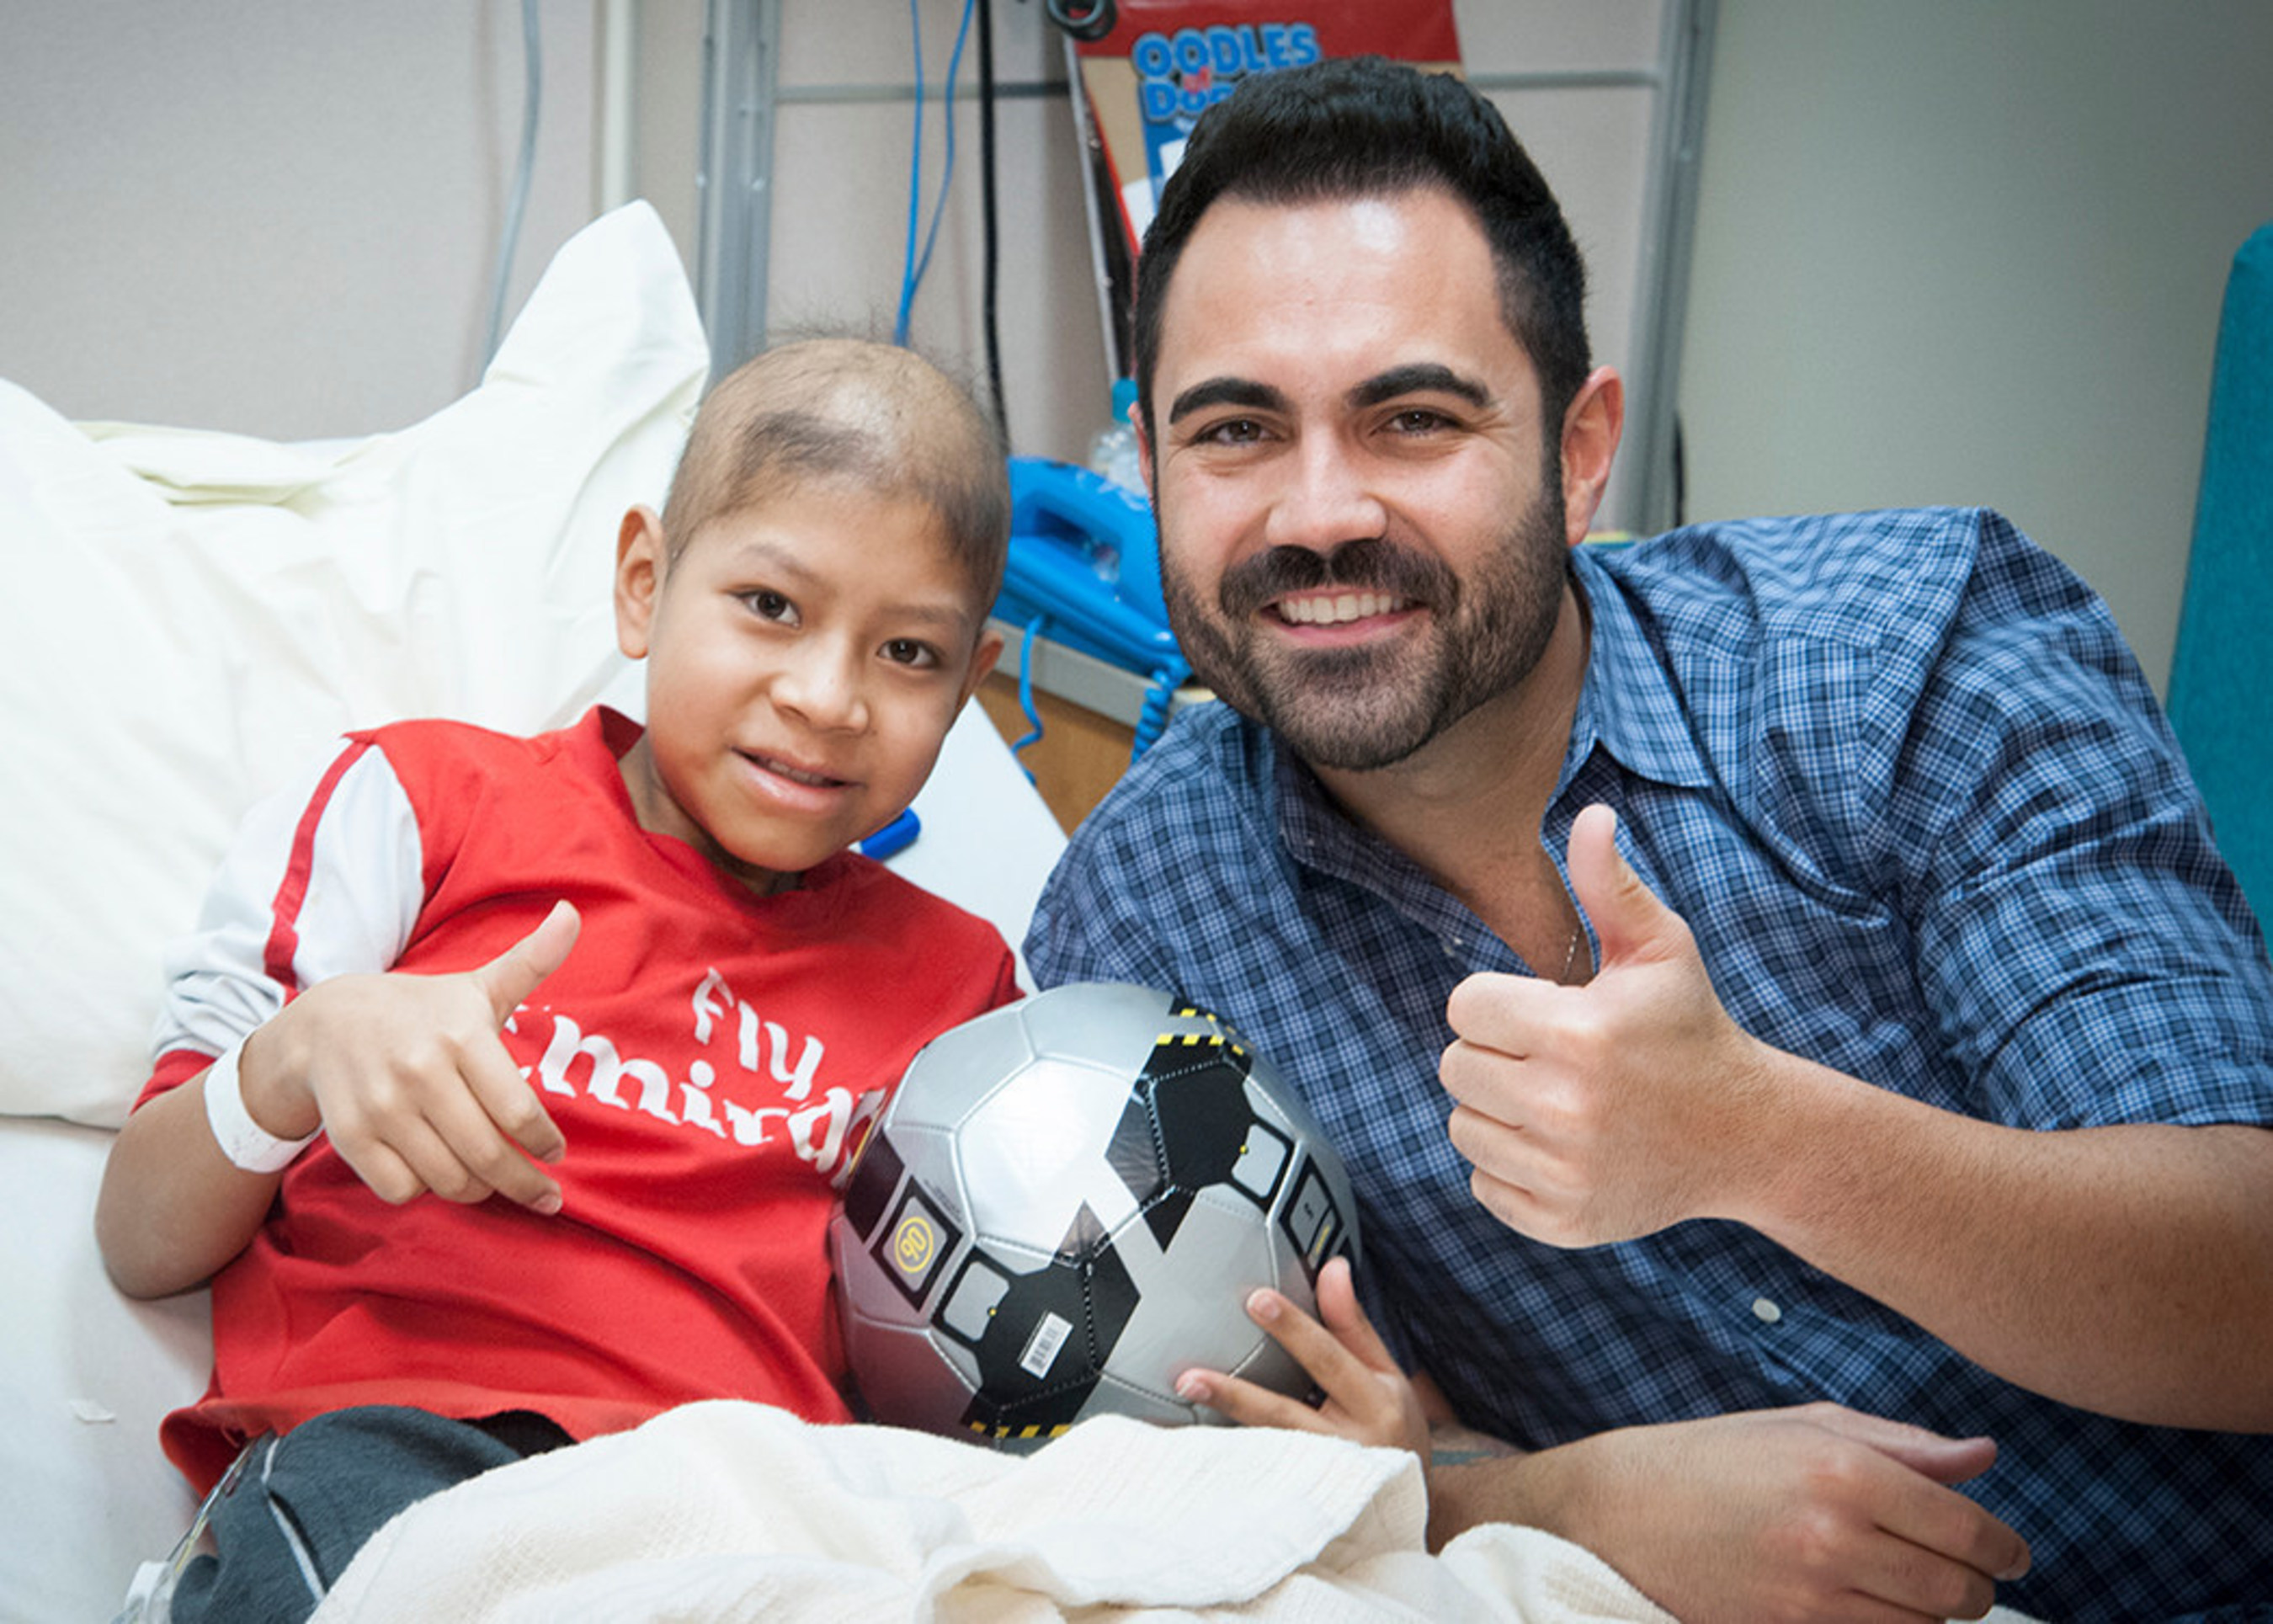 Univision Local Media Raises $3.5 Million For Children Battling Cancer And Other Life-Threatening Diseases At St. Jude Children's Research Hospital'